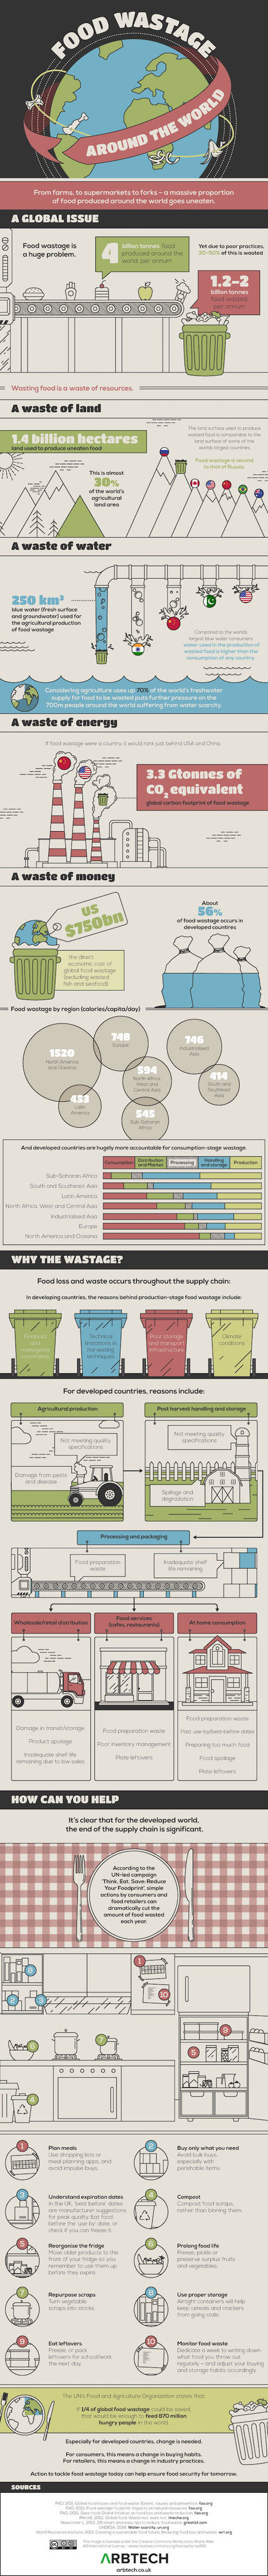 INFOGRAPHIC: How food waste has become a huge global problem | Développement durable et efficacité énergétique | Scoop.it